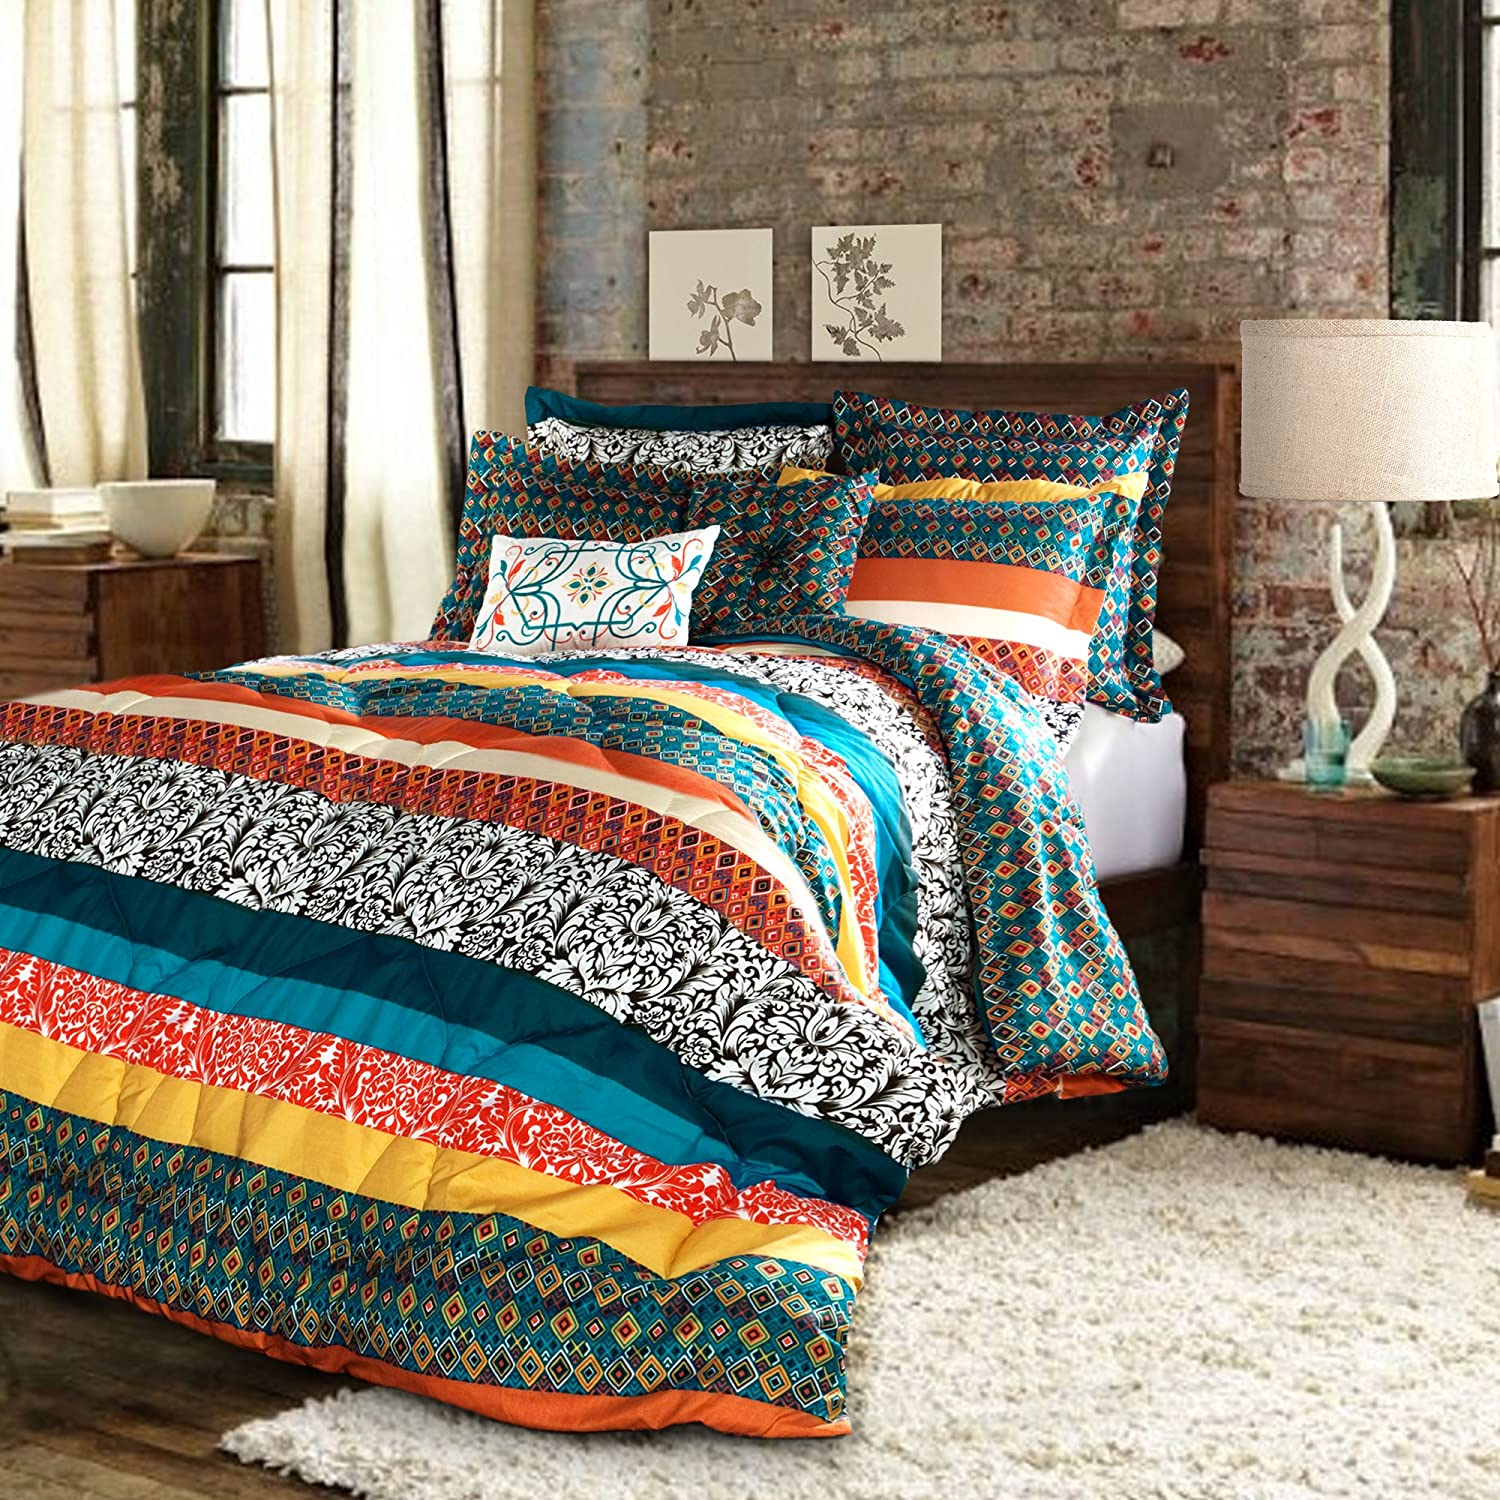 Lush Decor Turquoise & Tangerine, Twin-XL Boho Stripe 5 Piece Comforter Set Triangle Home Fashions 16T002993